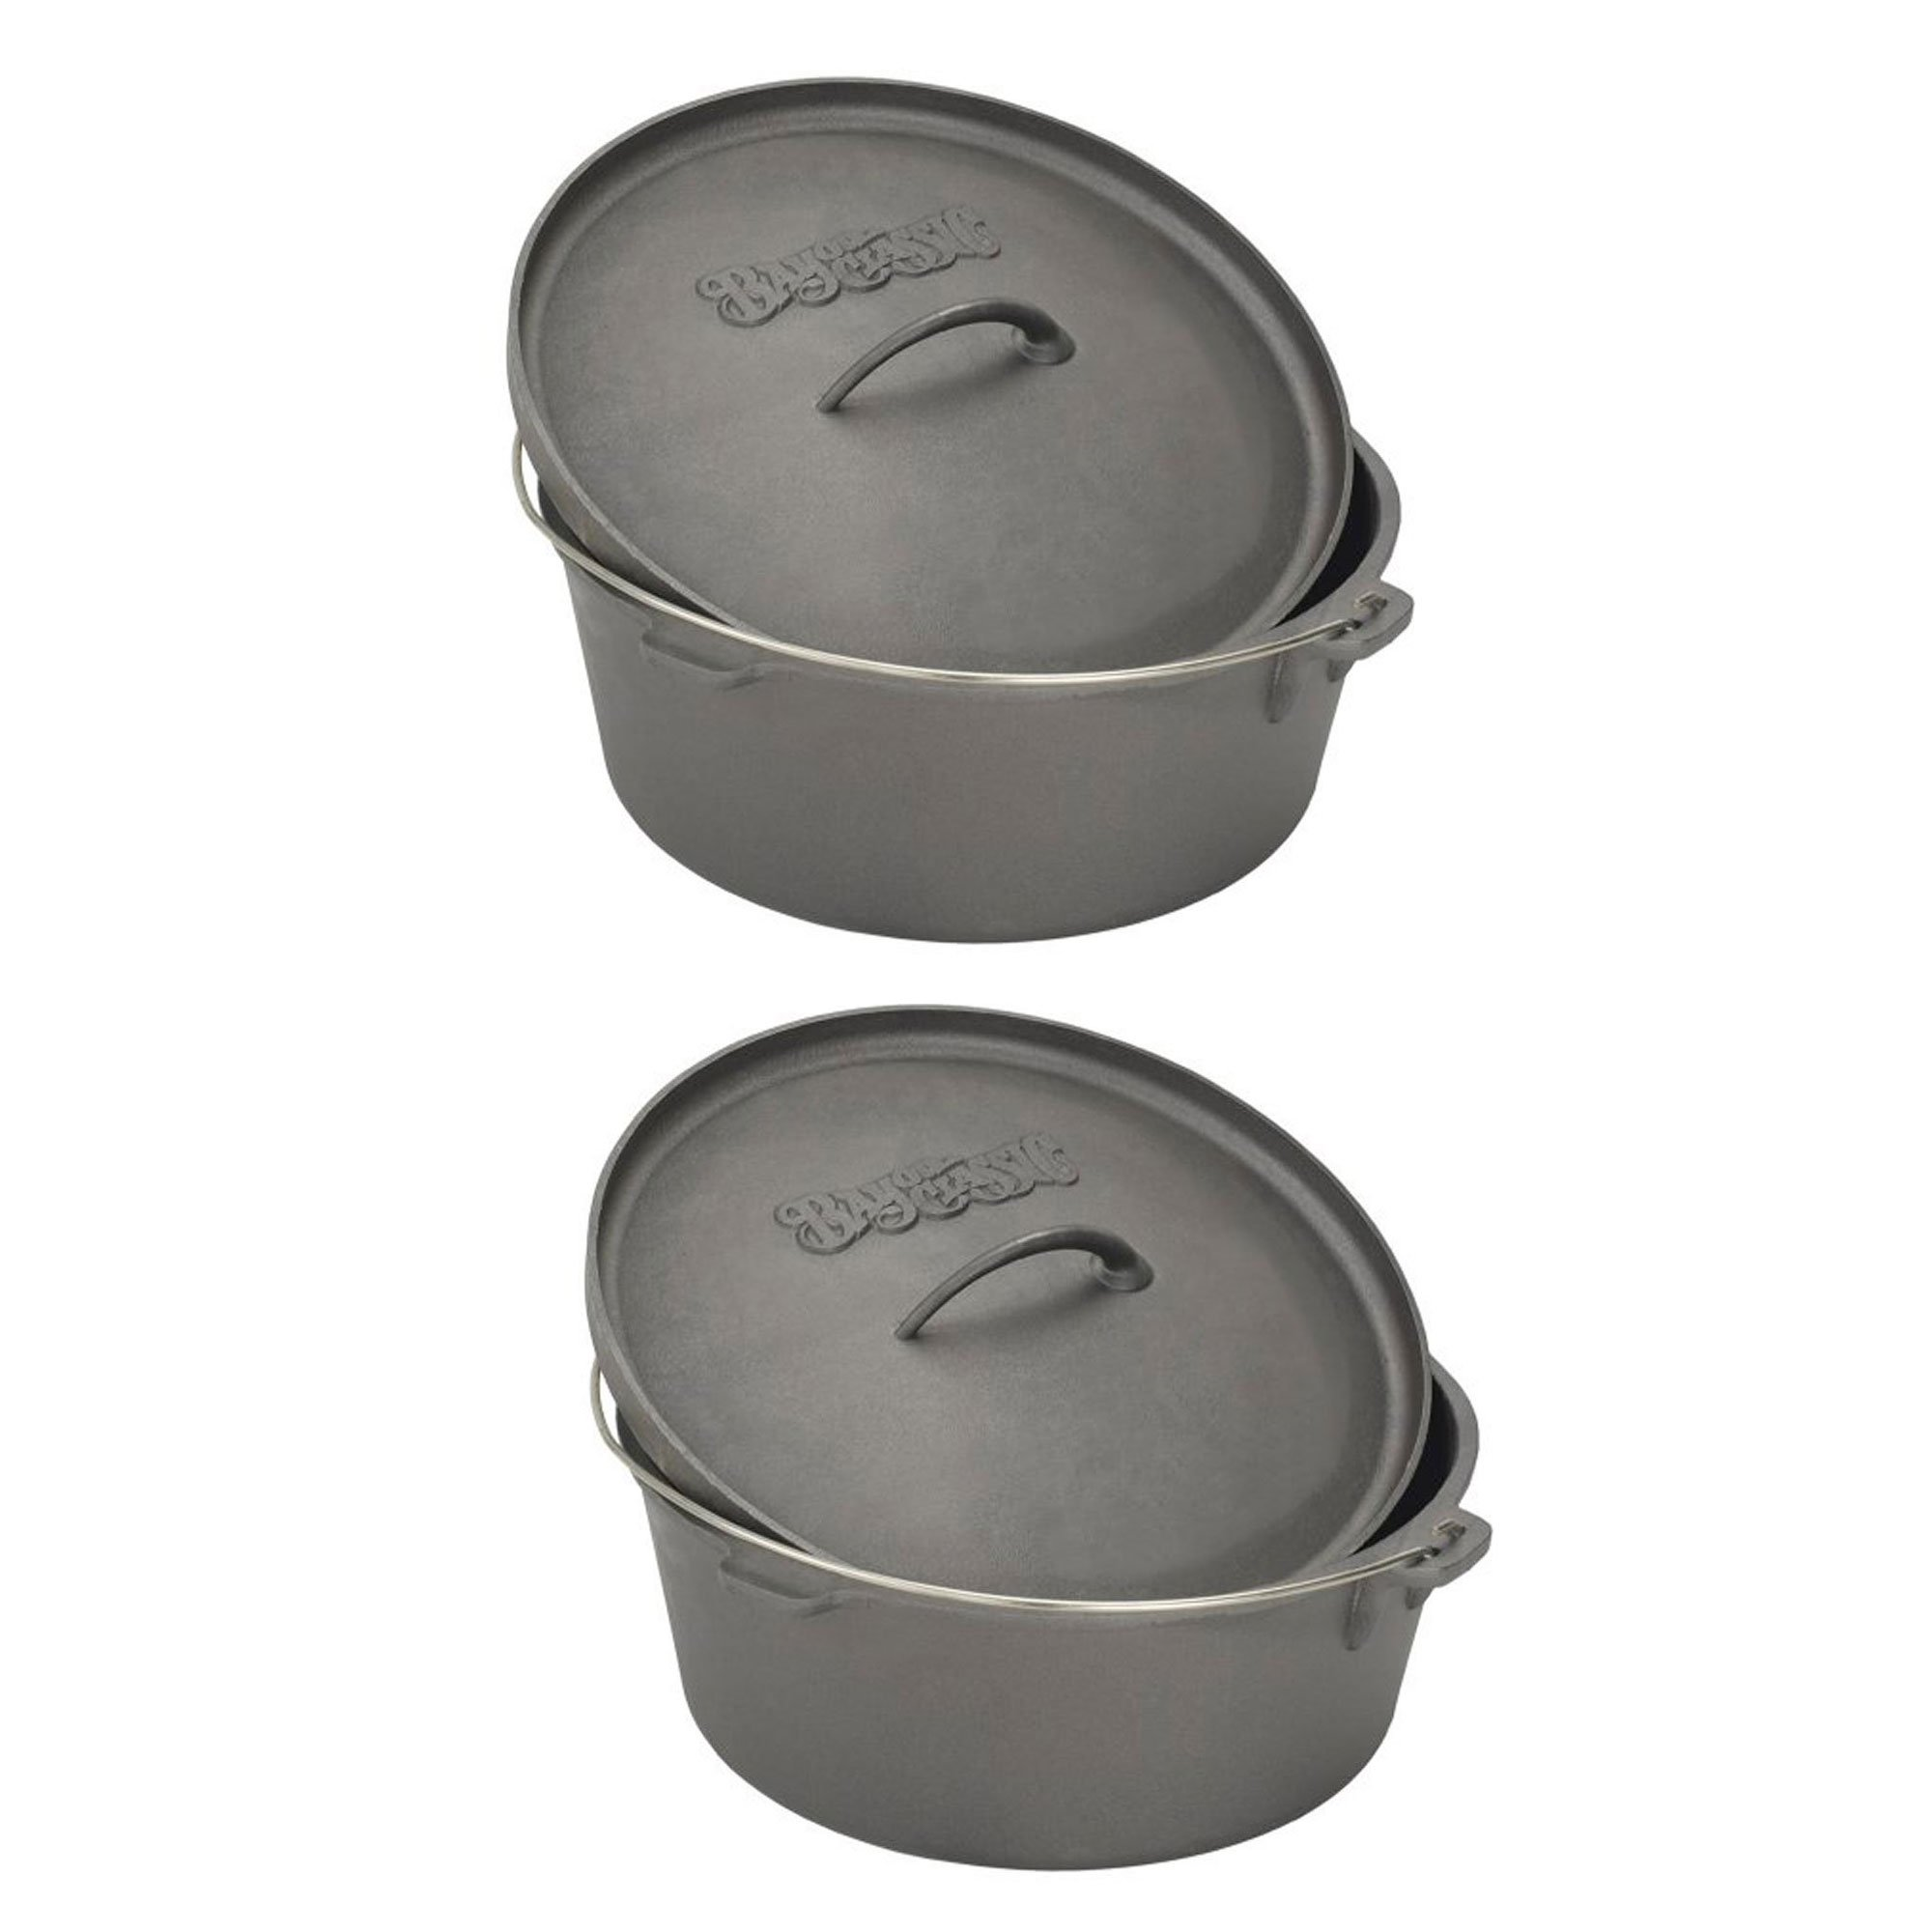 Bayou Classic 4 Quart Seasoned Cast Iron Cooker Dutch Oven w/ Basket (2 Pack)